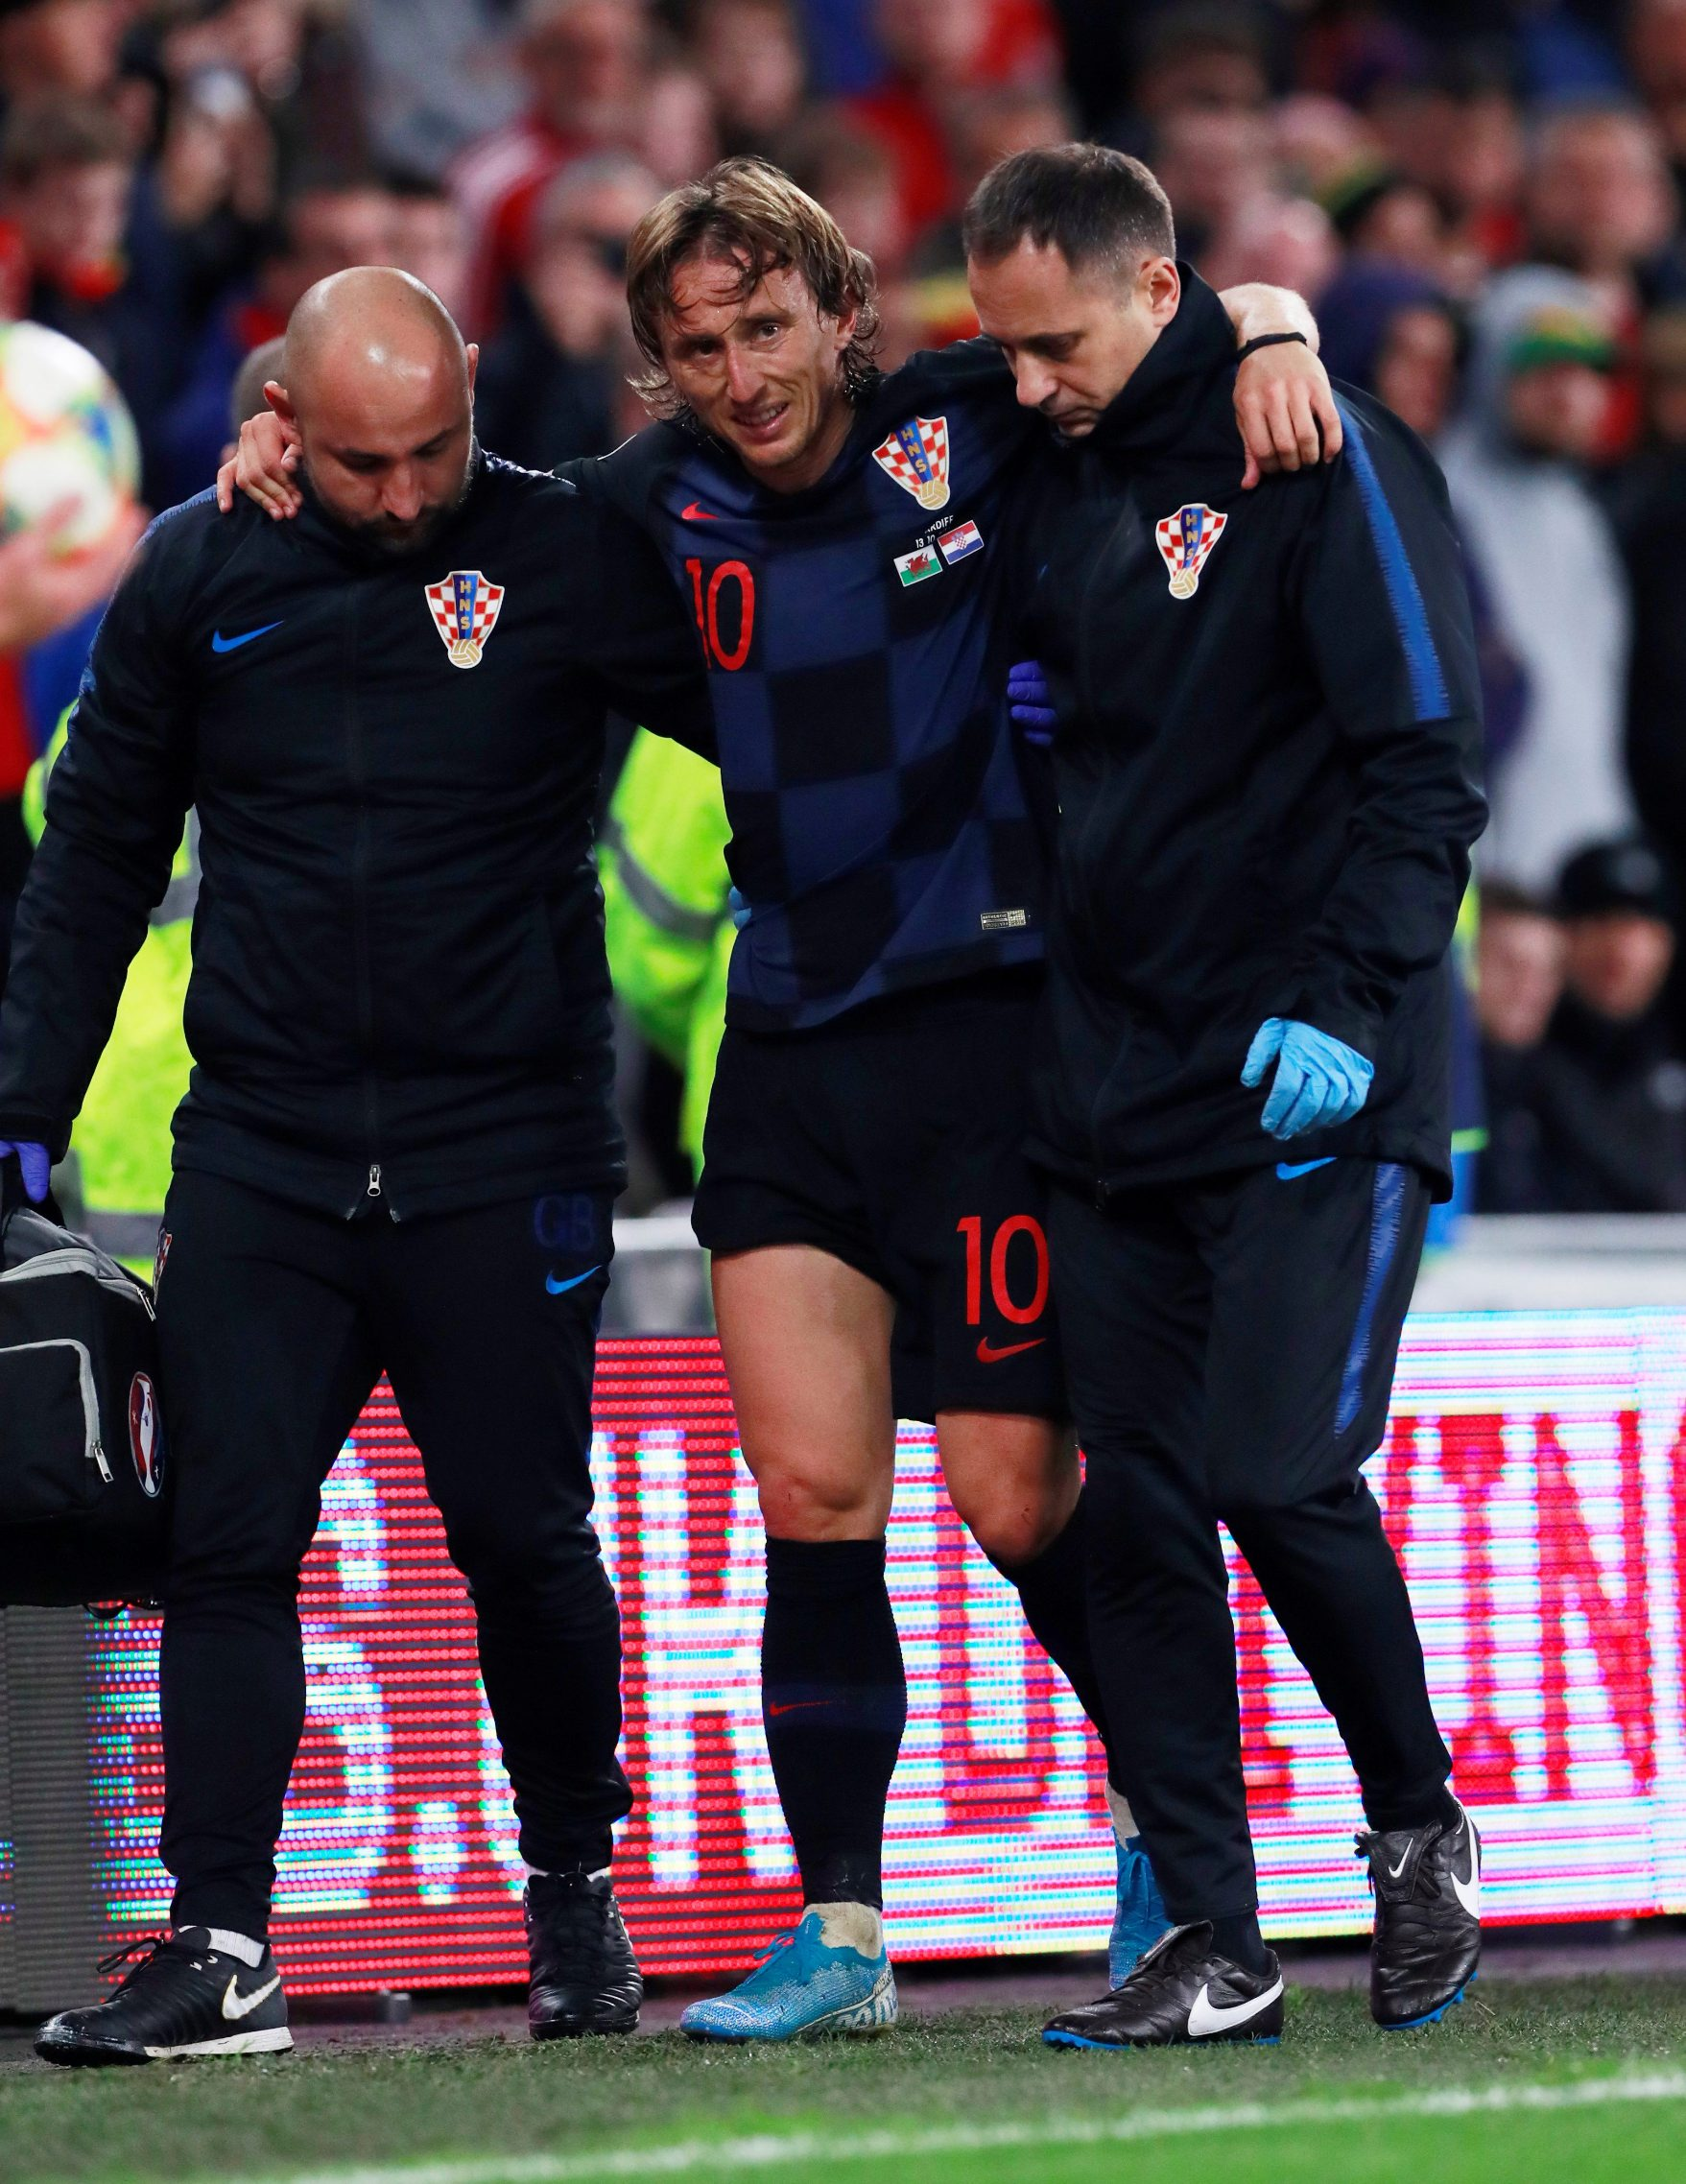 Soccer Football - Euro 2020 Qualifier - Group E - Wales v Croatia - Cardiff City Stadium, Cardiff, Britain - October 13, 2019  Croatia's Luka Modric is helped off the pitch after sustaining an injury             Action Images via Reuters/Andrew Couldridge